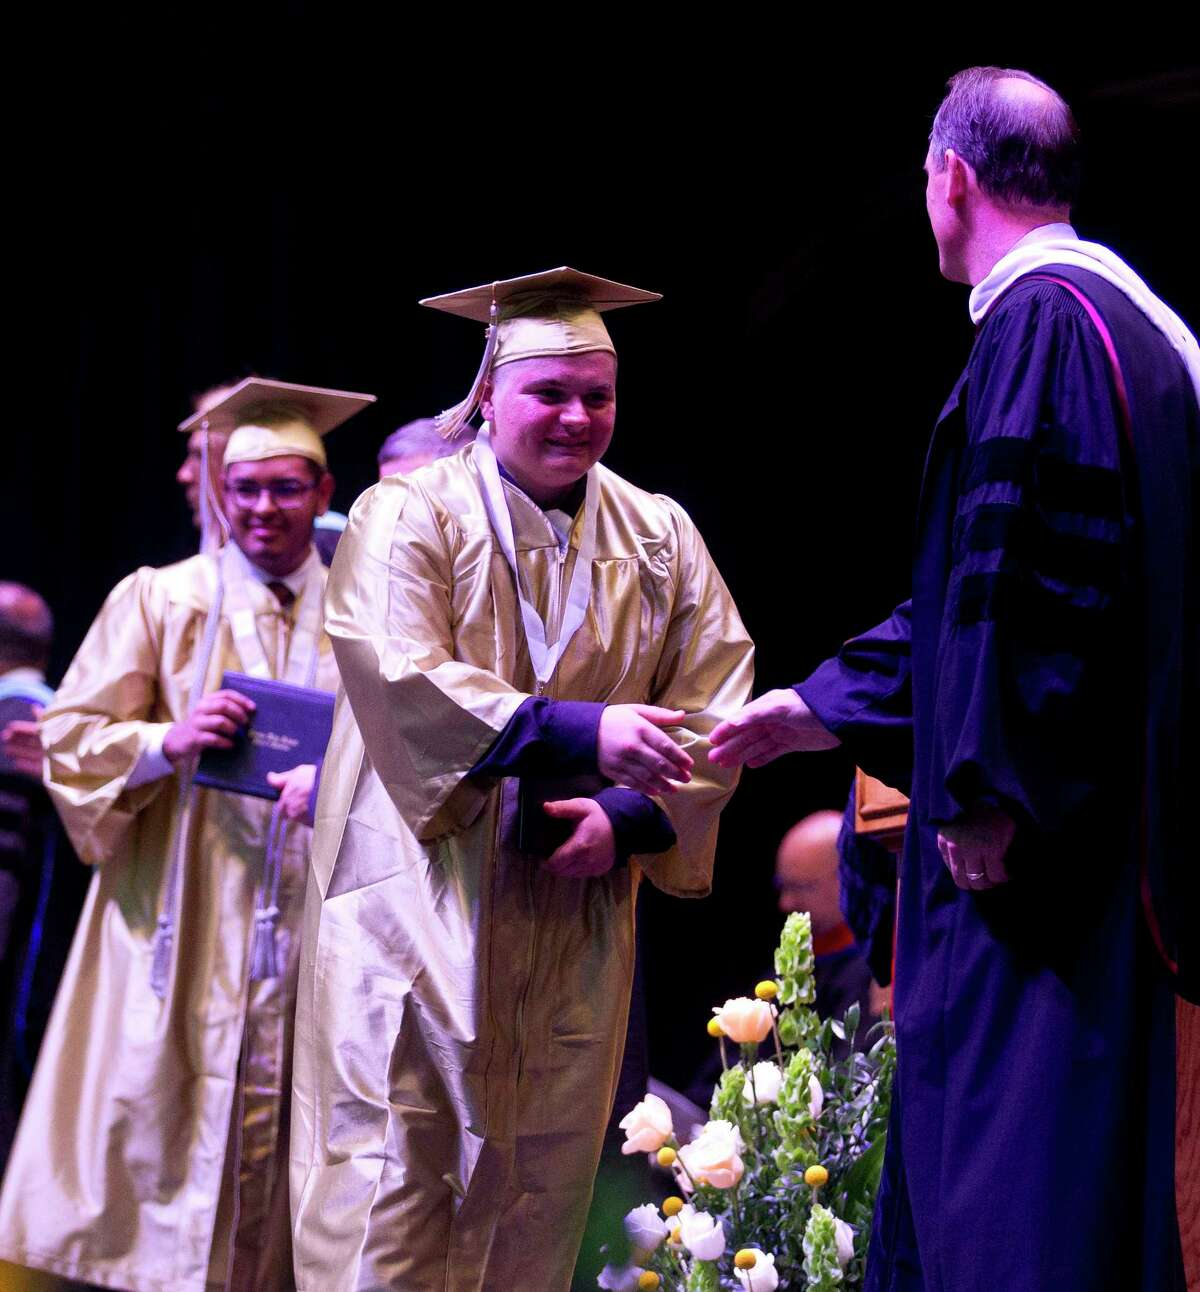 Seniors receive their high school diplomas during a Conroe High School graduation ceremony at Cynthia Woods Mitchell Pavilion, Tuesday, May 30, 2017, in The Woodlands.